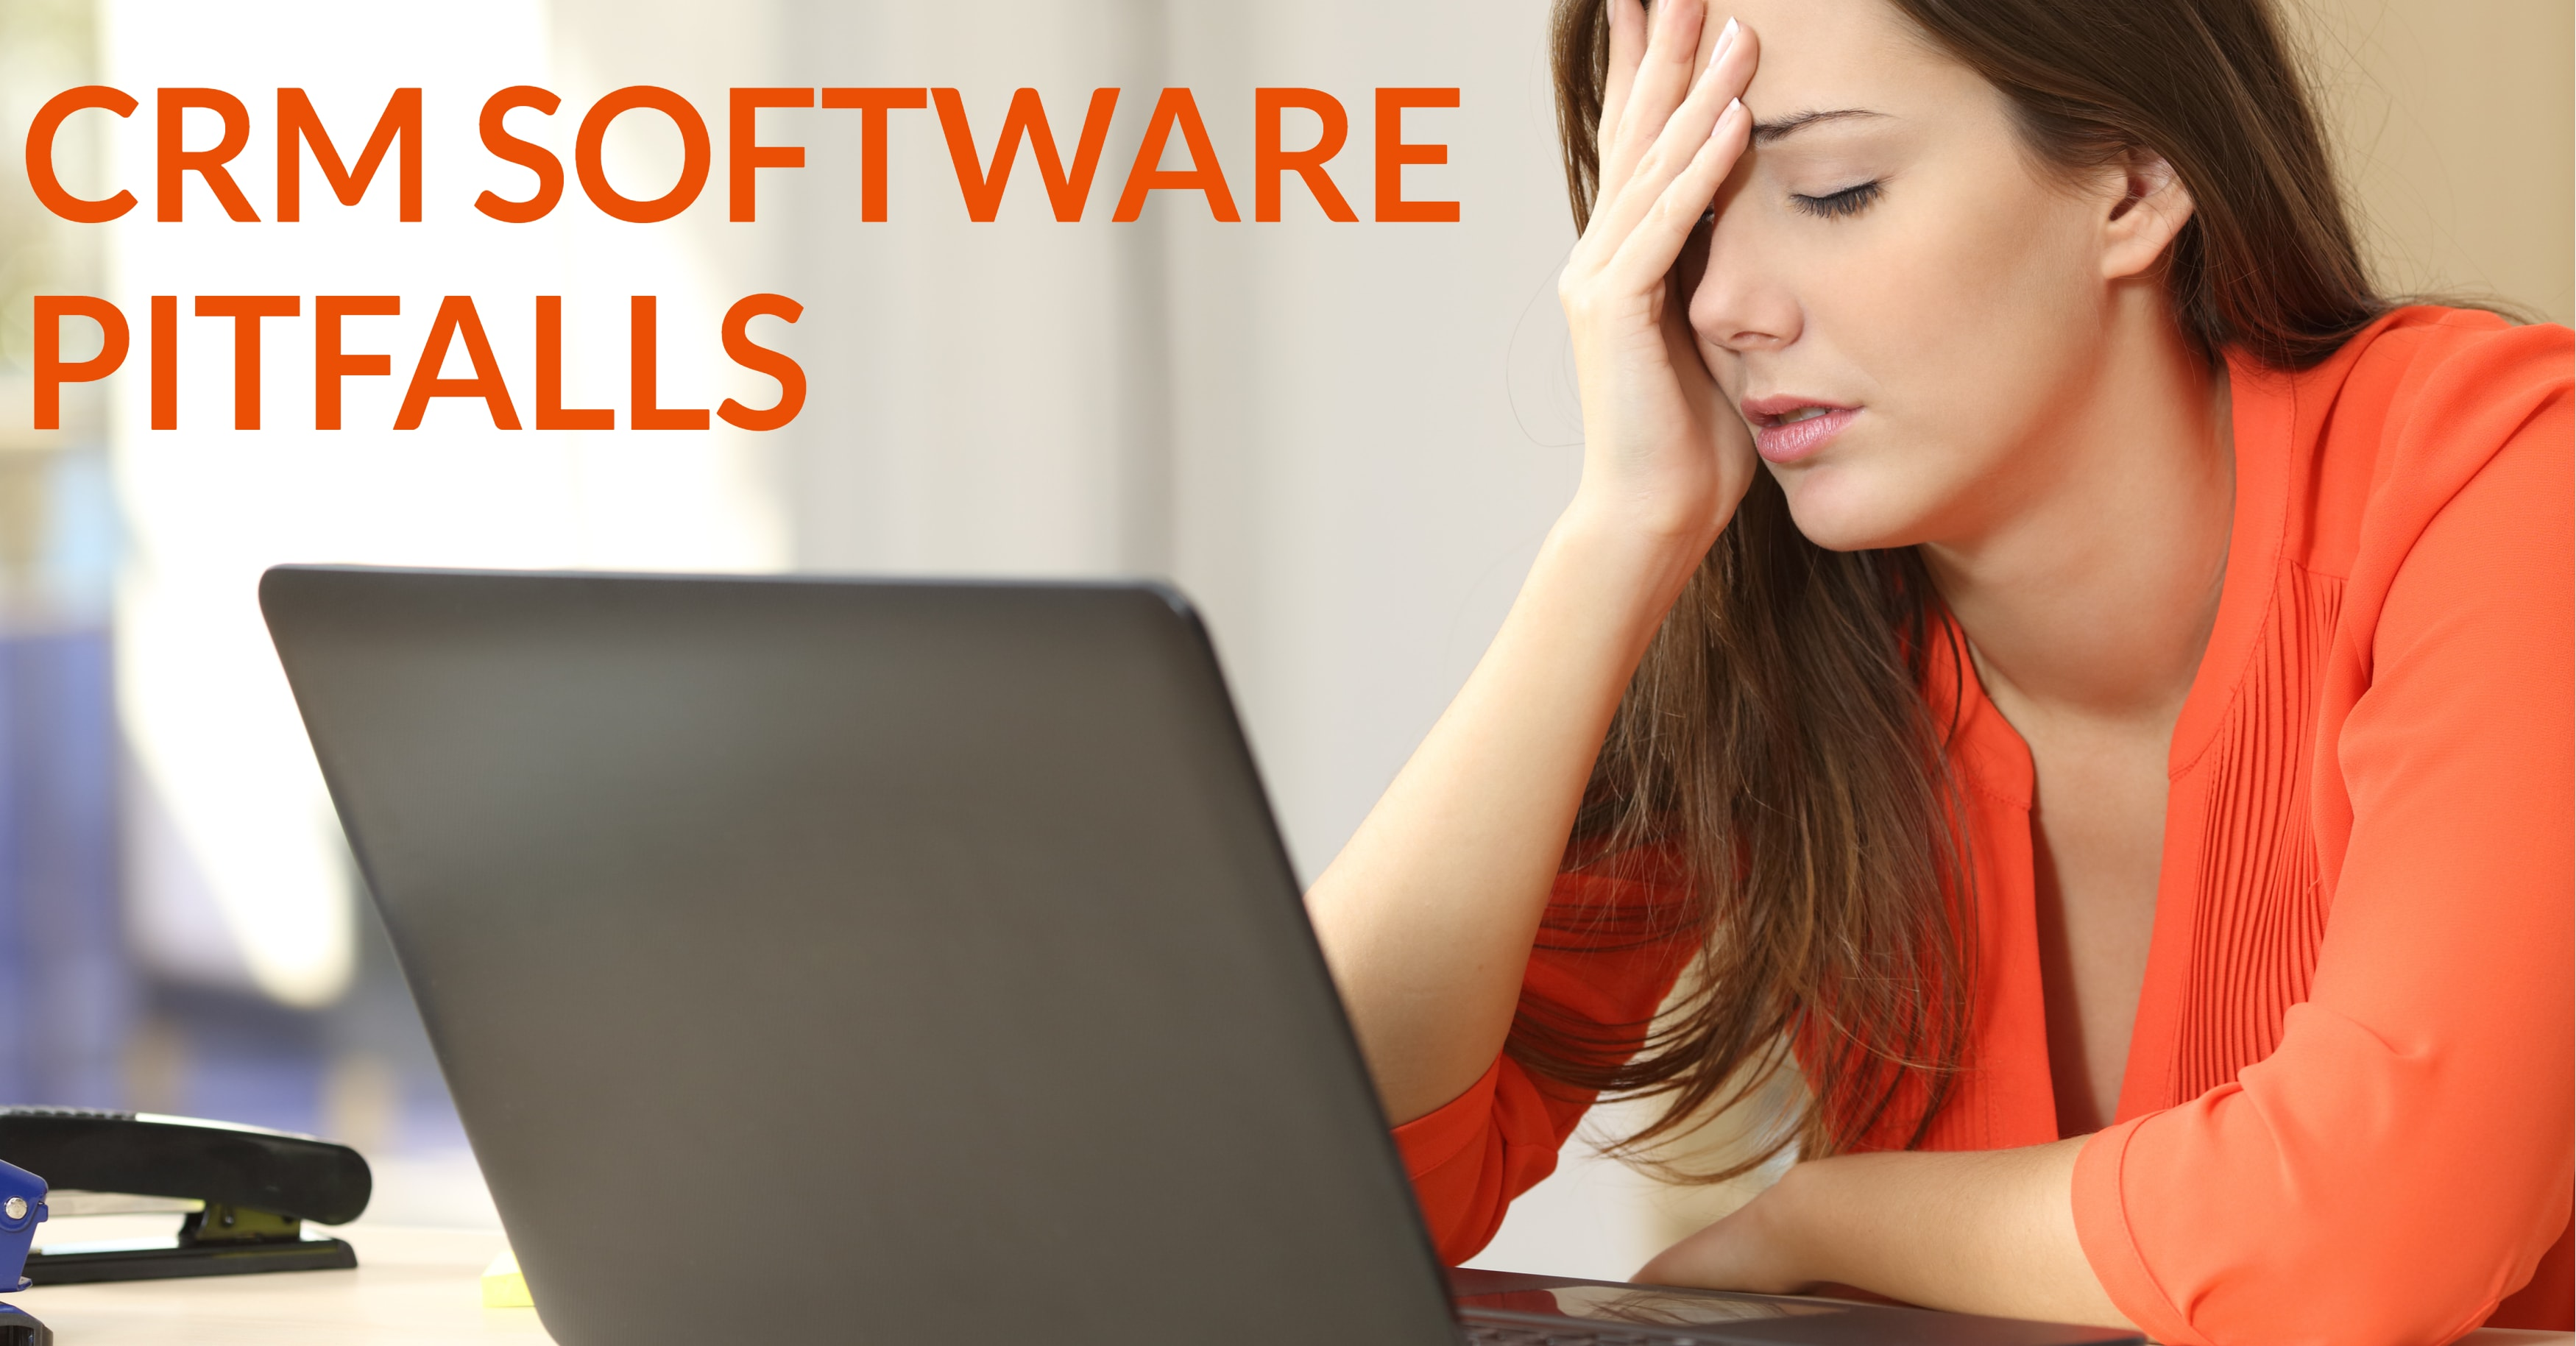 Top 5 CRM Software Pitfalls